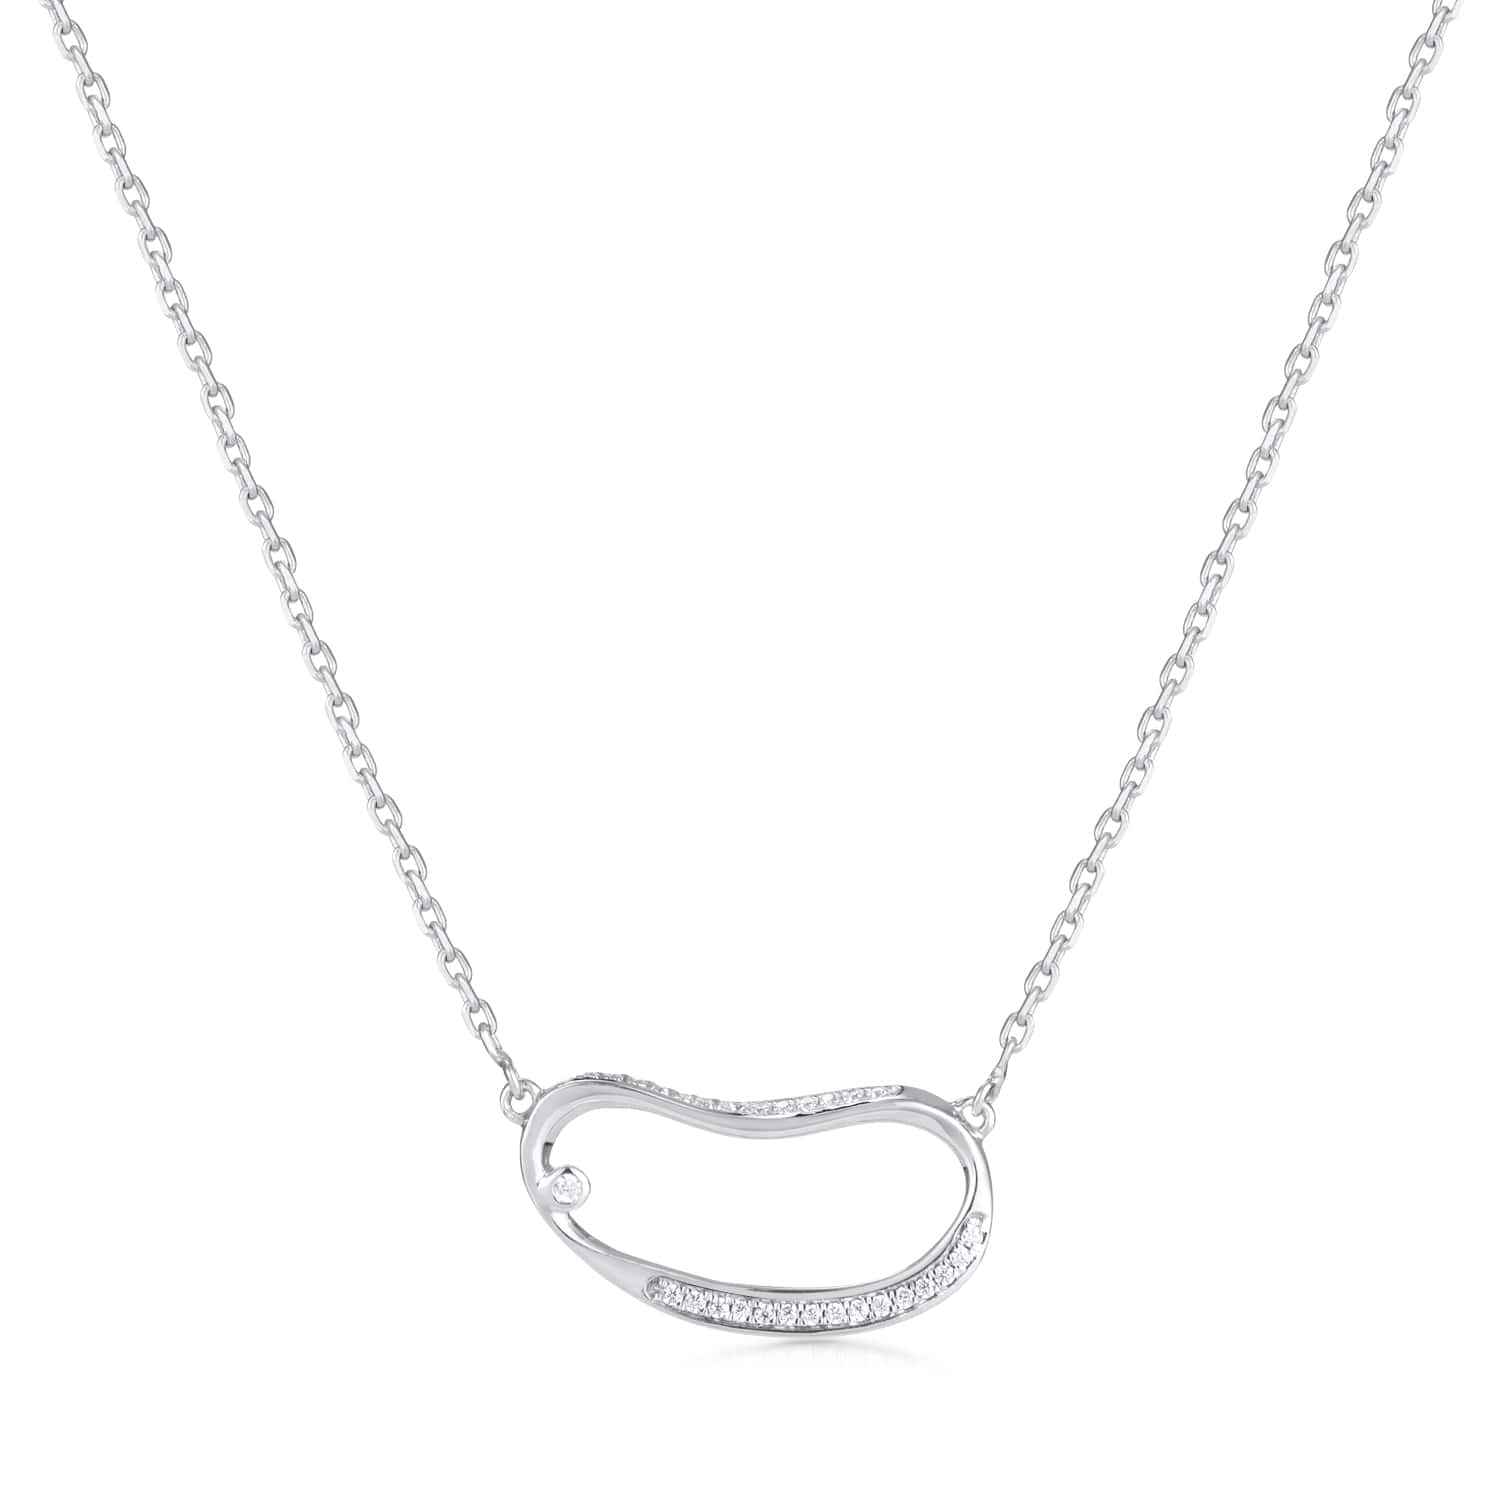 Marque Hoop Diamond Necklace